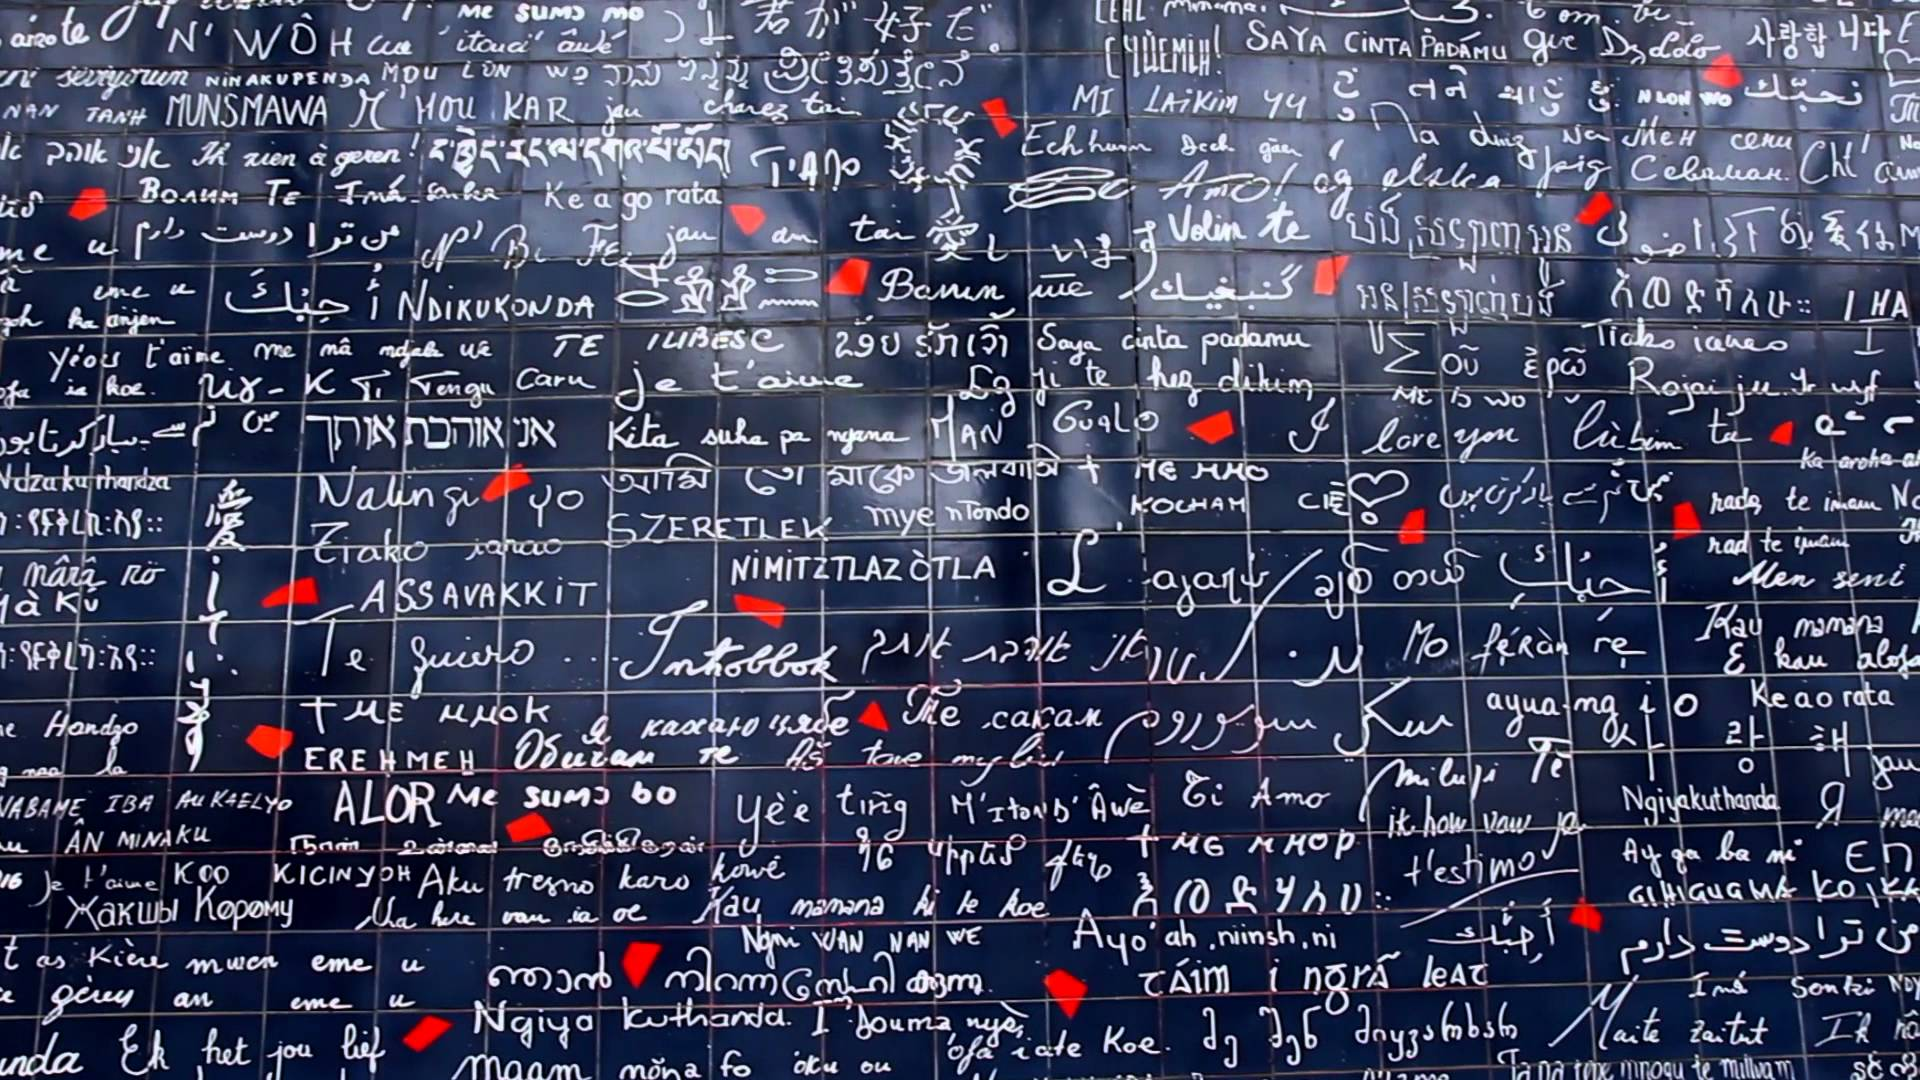 Le mur de l'amour paris